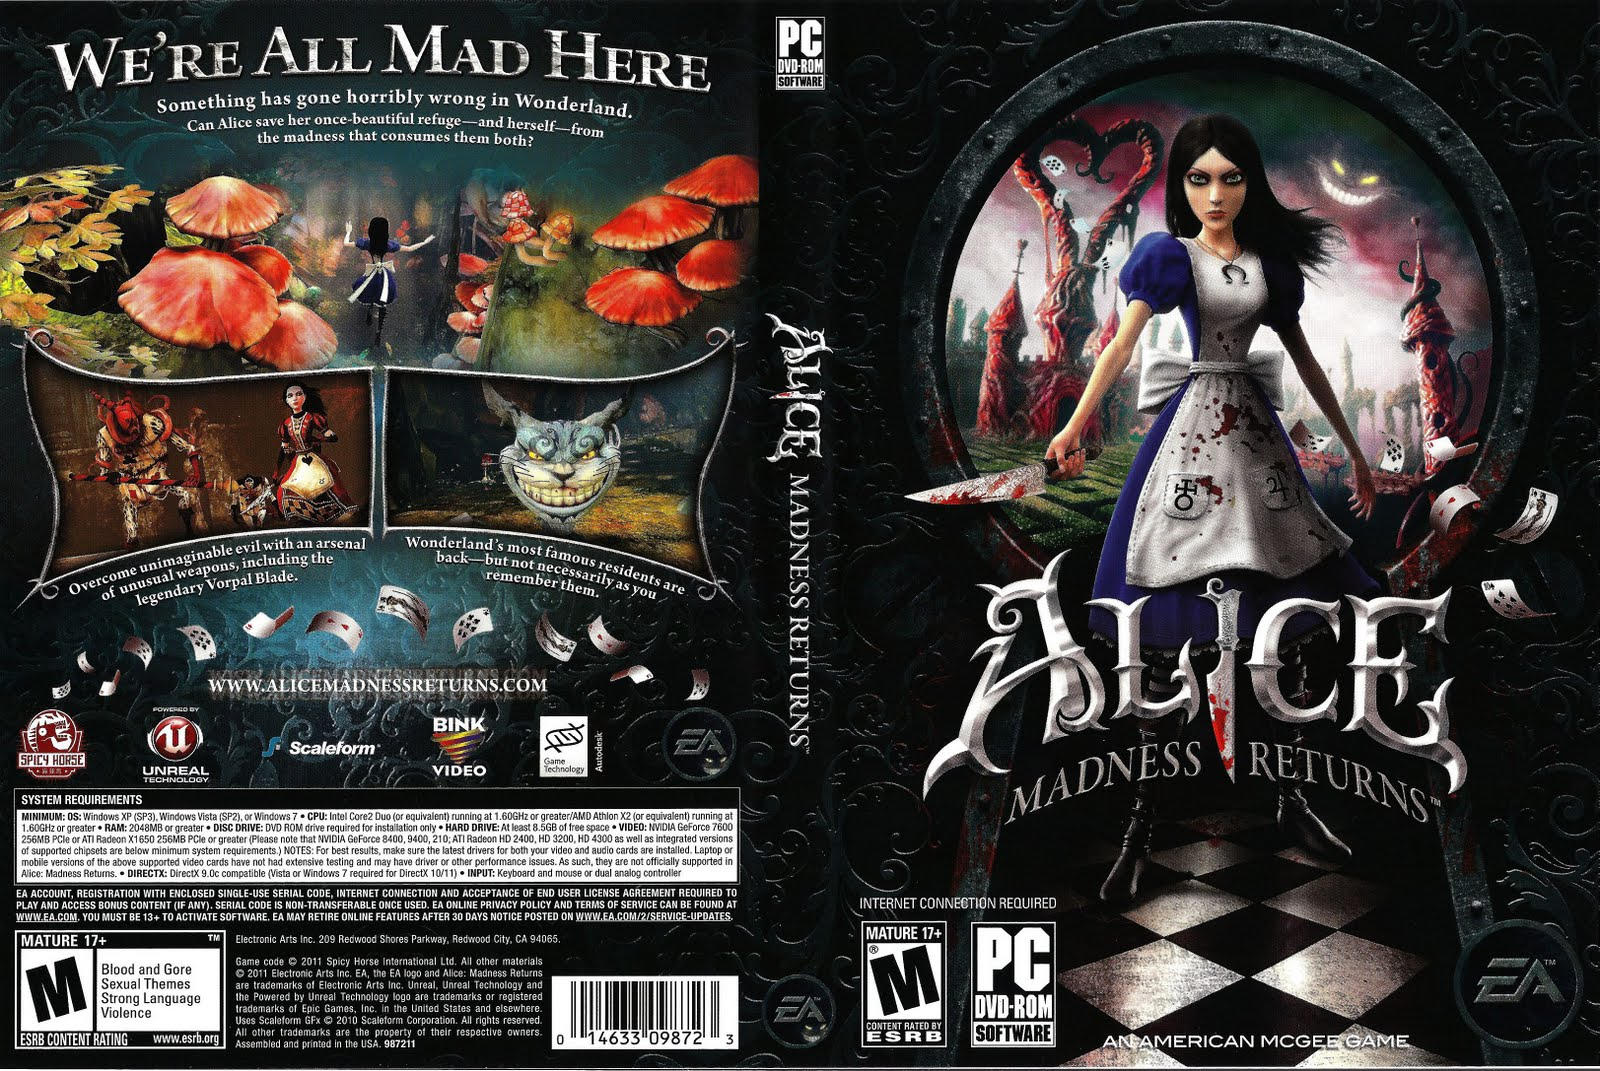 Alice madness return nude patch adult image